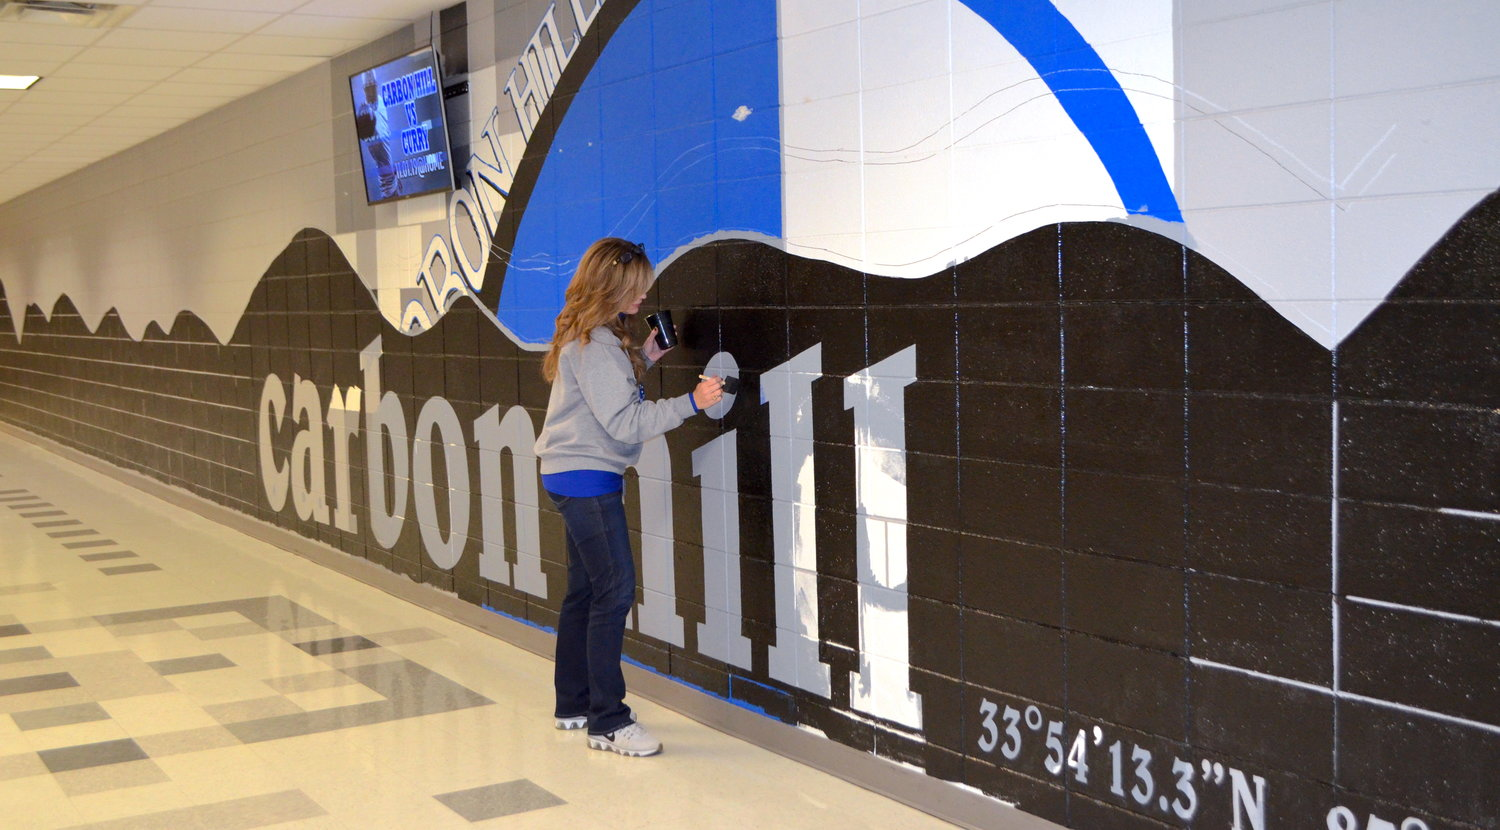 Carbon Hill High School librarian Tina McGee has spent the past week working on a large mural at the school. Once completed, the mural will resemble the Patagonia logo, with a Carbon Hill twist. As she painted after school on Friday, McGee explained the hills she has designed on the wall mirror a panoramic picture she took of hills behind the school's football field. The librarian has painted other murals around the school as well.